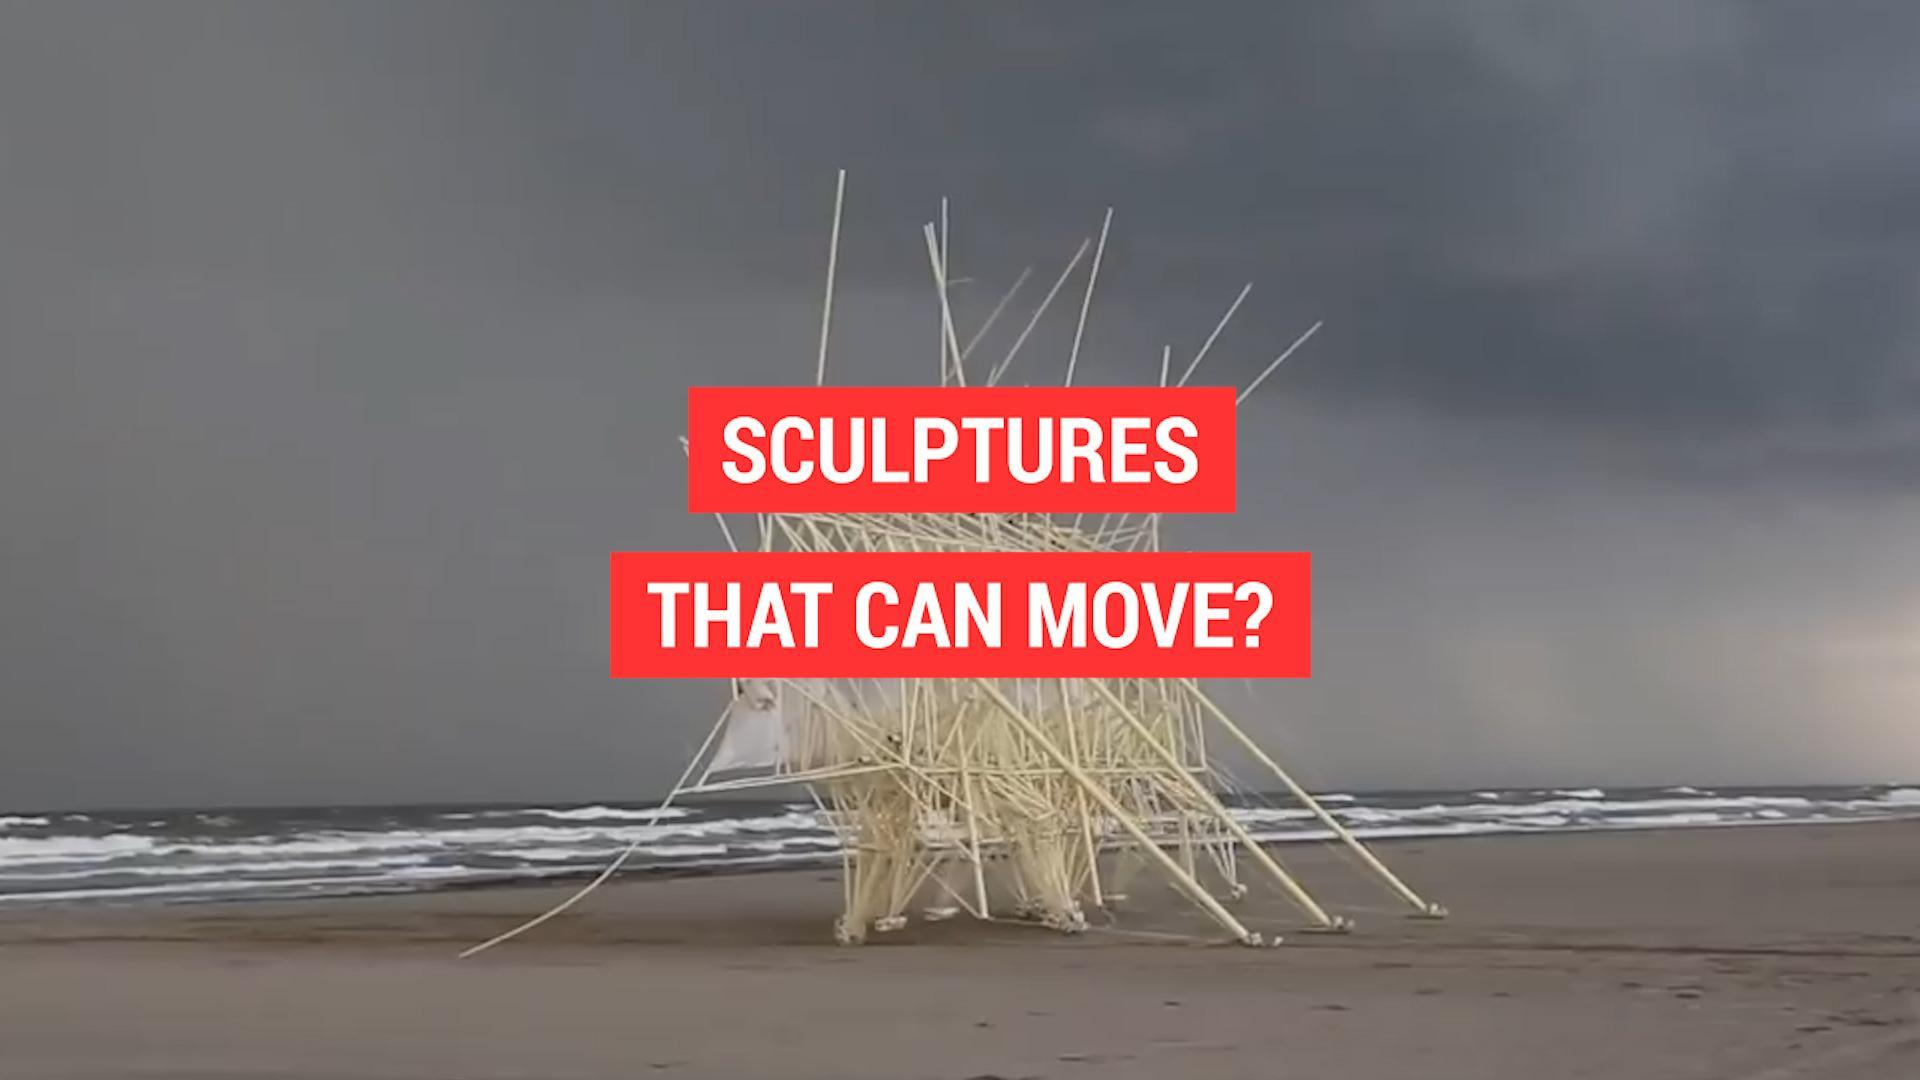 Moving sculptures on the beaches of The Netherlands